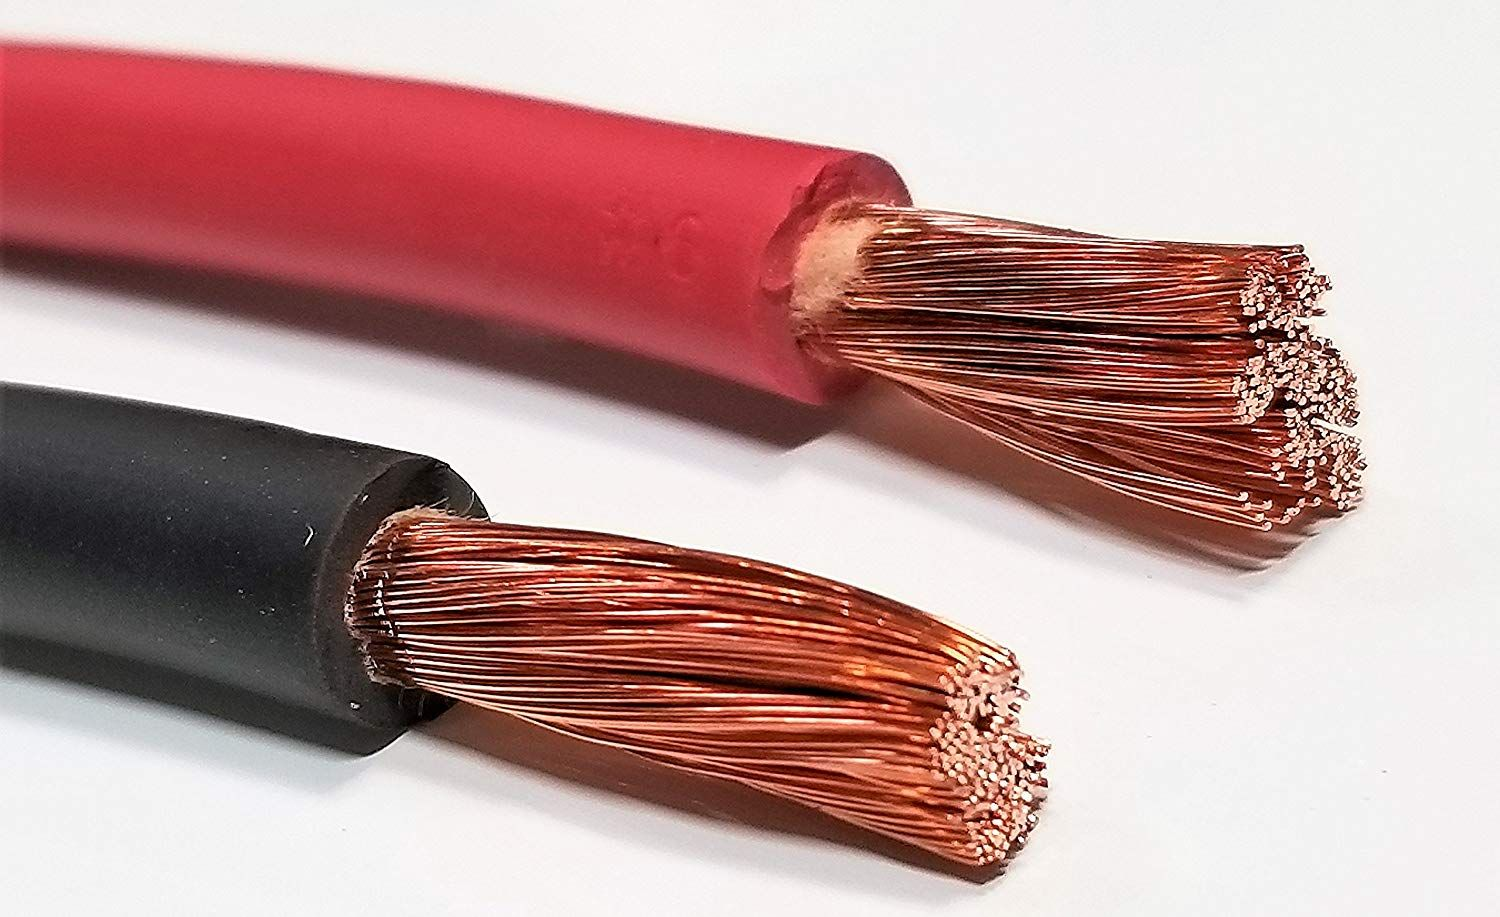 6 Awg Welding And Battery Cable 600 Volt 10 Feet Each Black Red Welding 10 Things Off Grid Solar